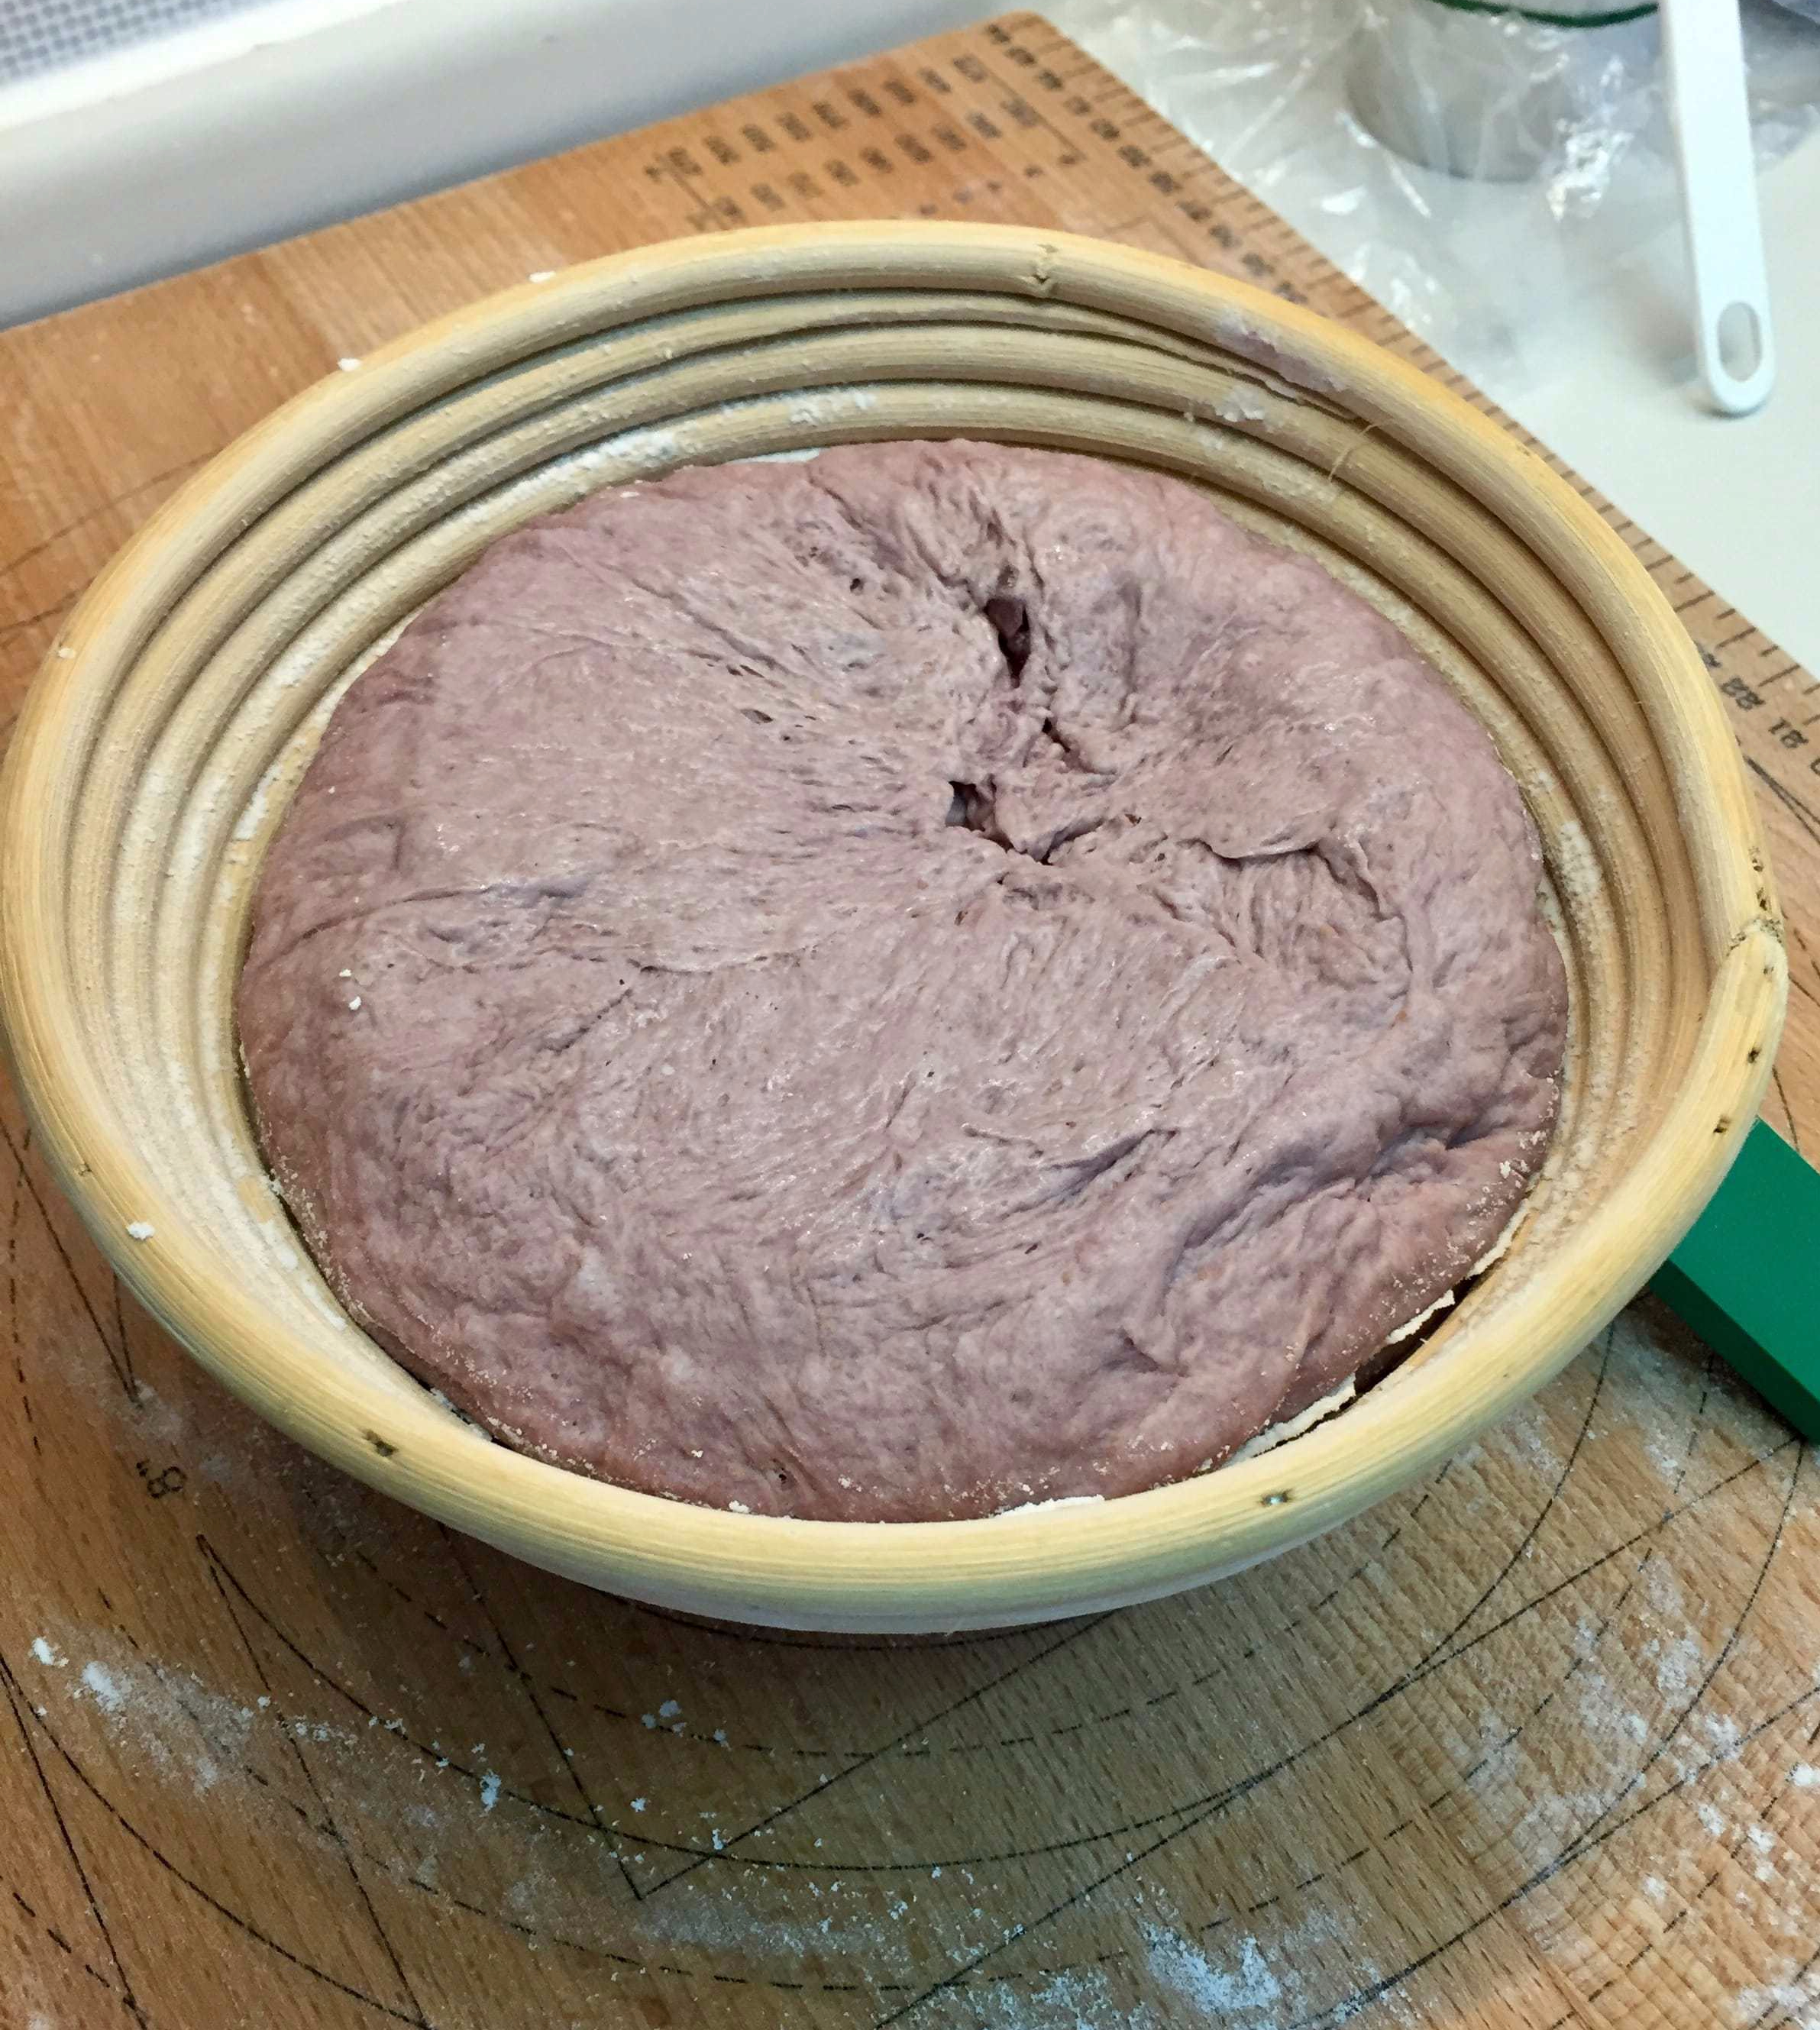 Main dough in proofing basket